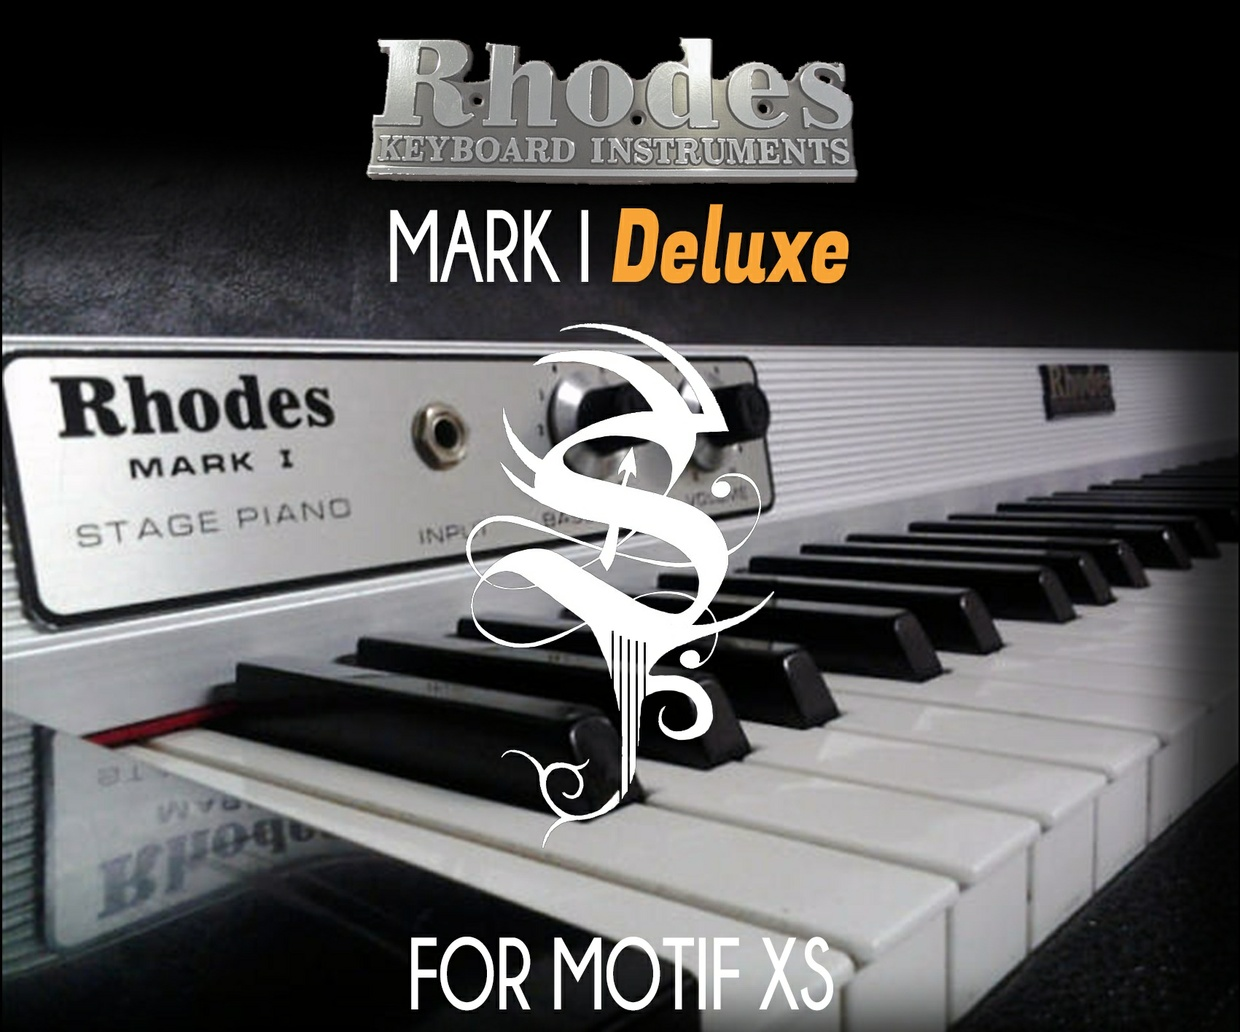 Rhodes Mark I Deluxe For Motif XS